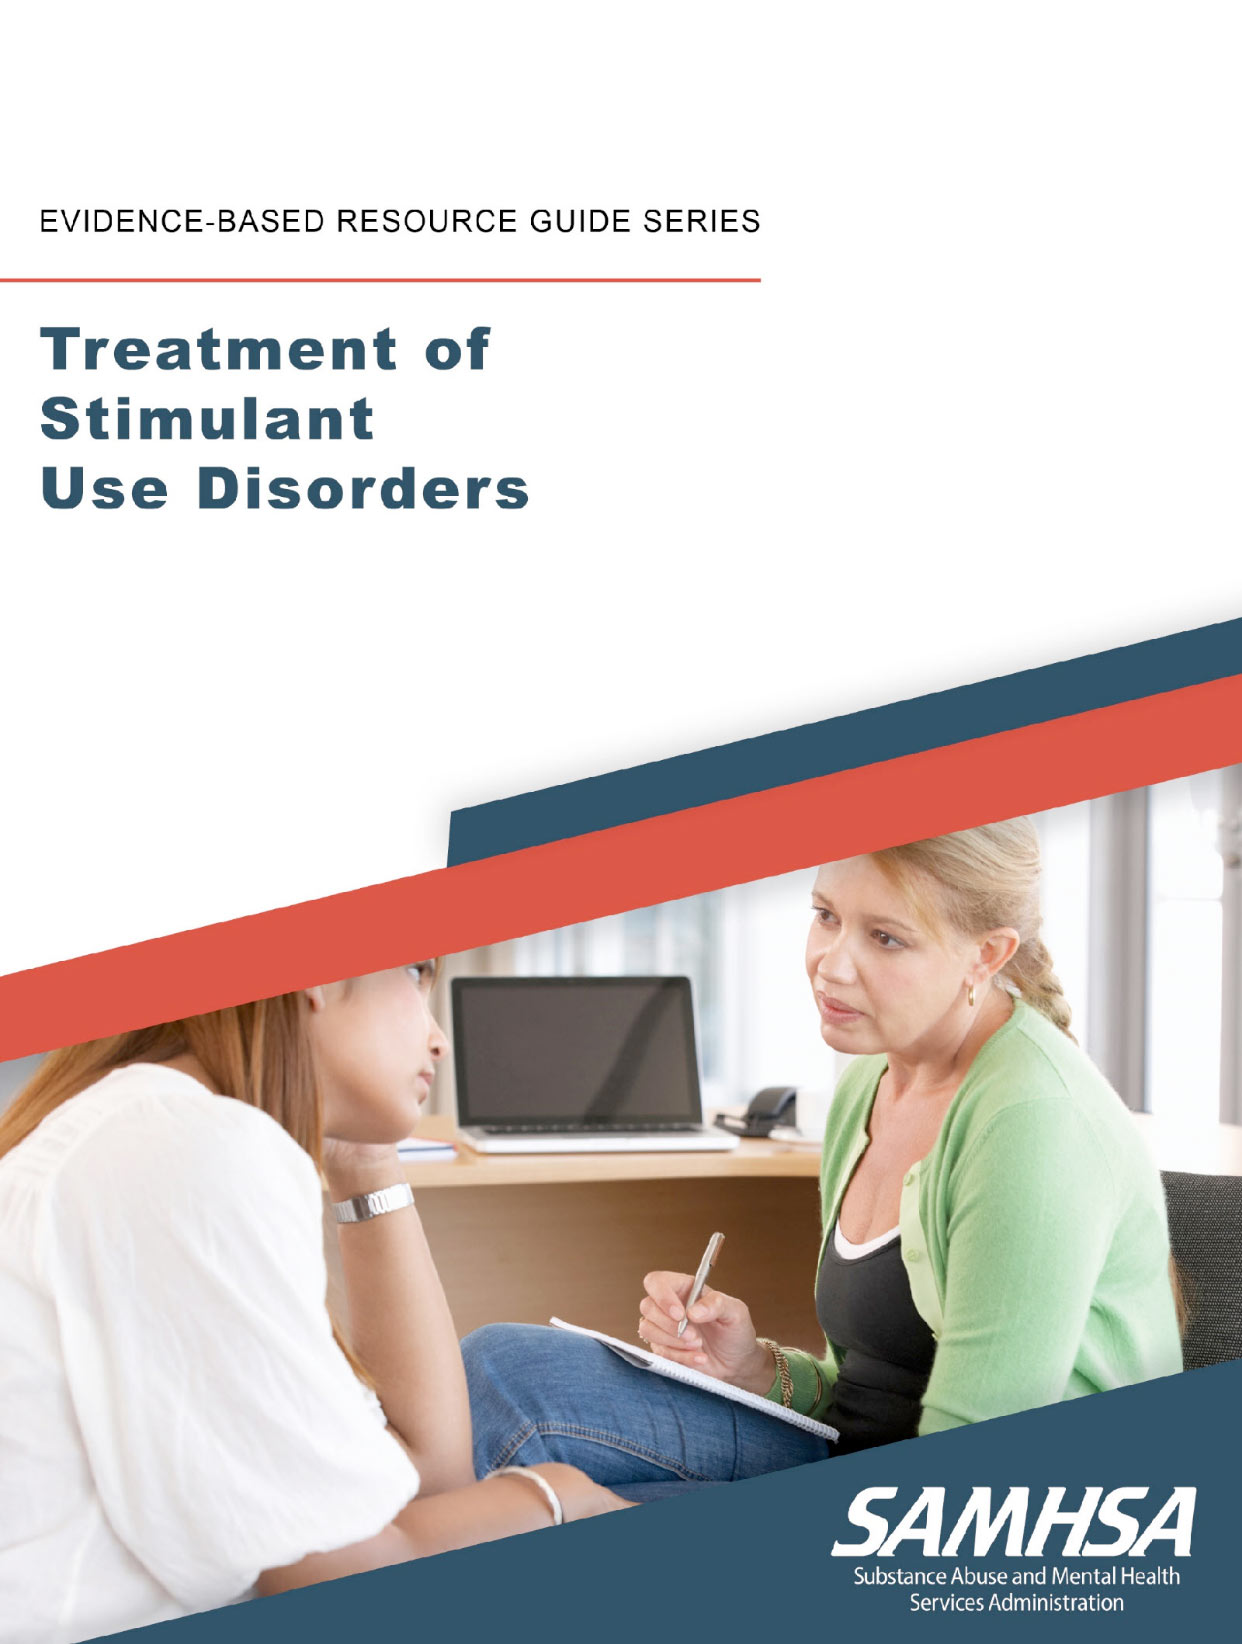 Read Treatment of Stimulant Use Disorders on SAMHSA.gov.